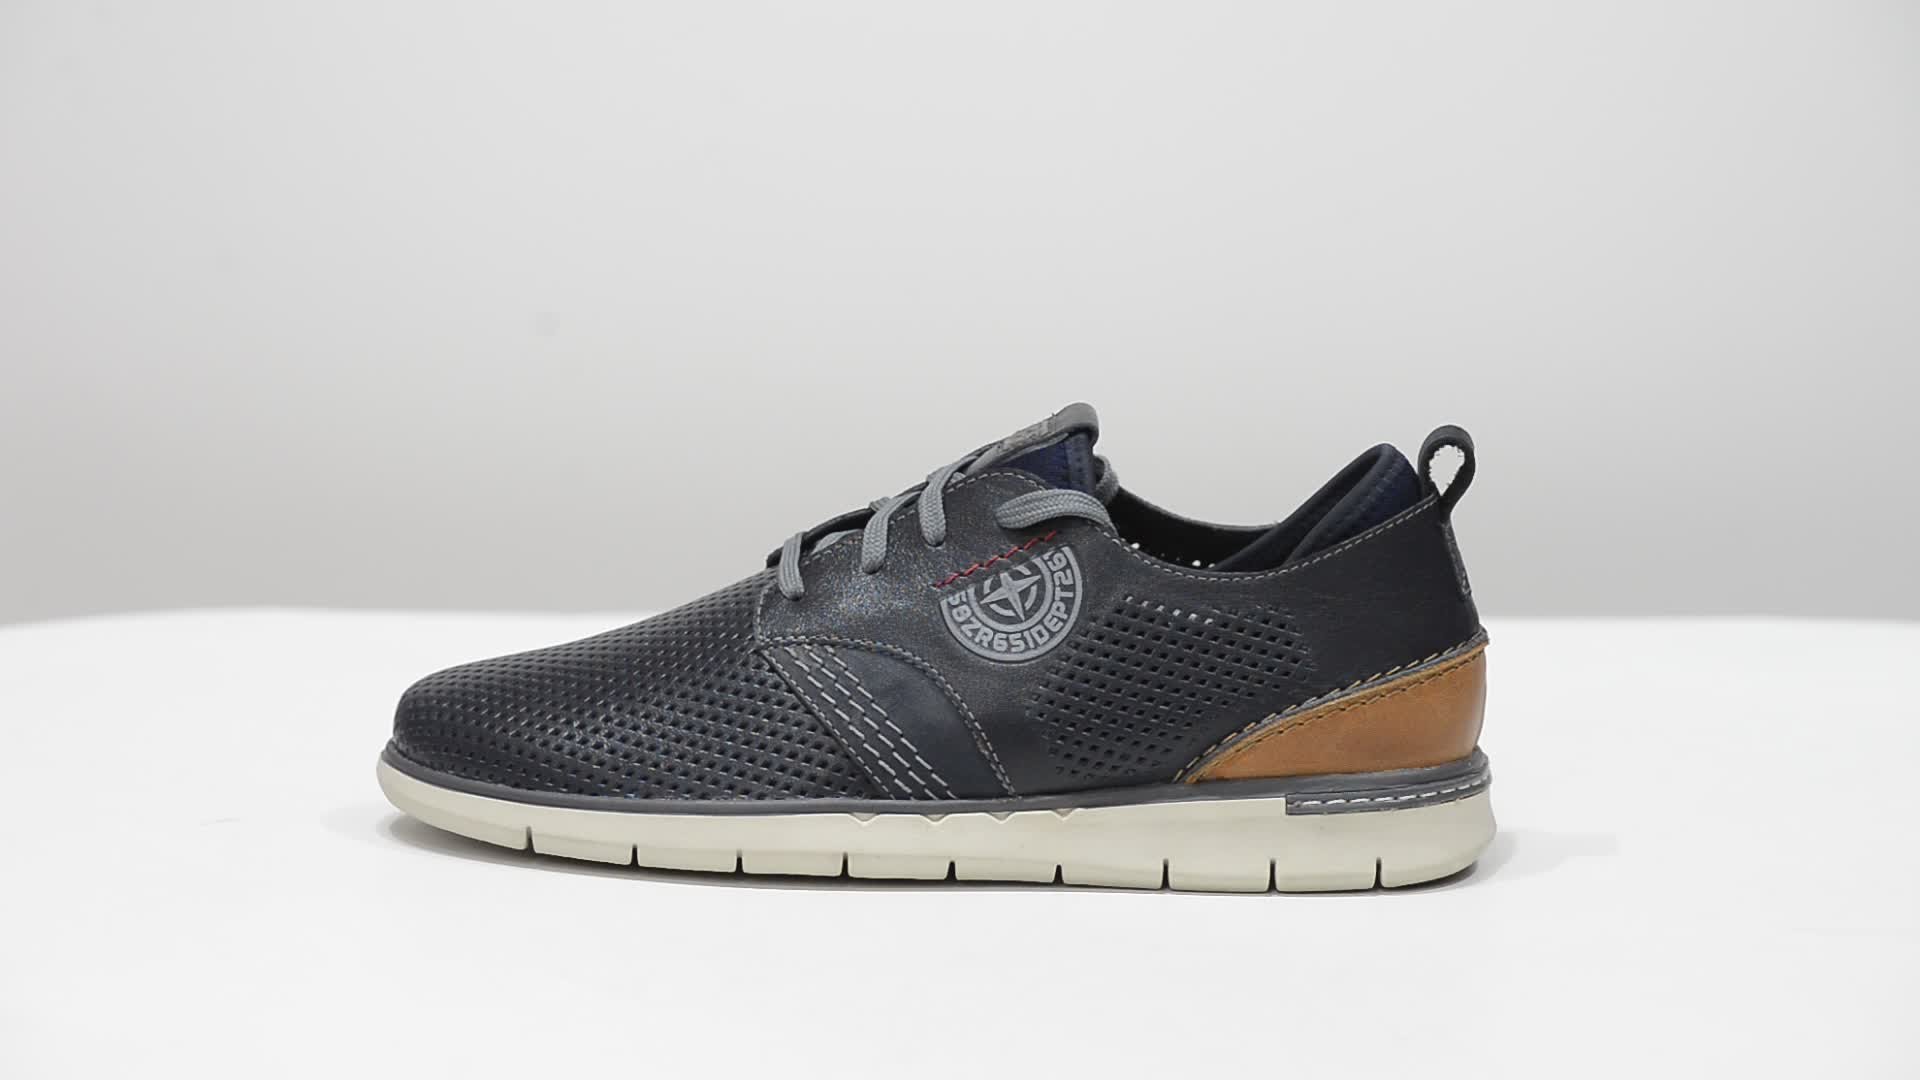 Sneakers outdoor shoes for men L380 sp